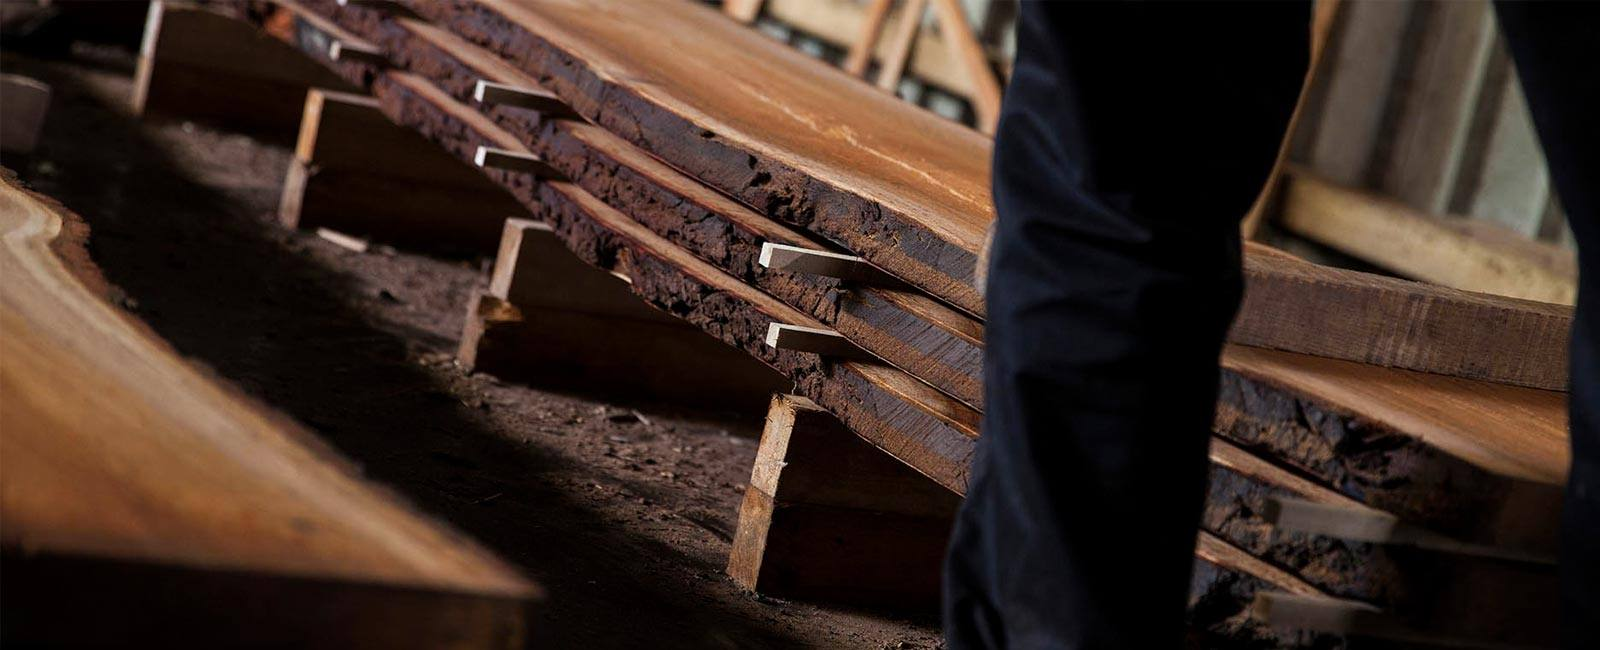 slider-oak-boards-in-stick.jpg.webp